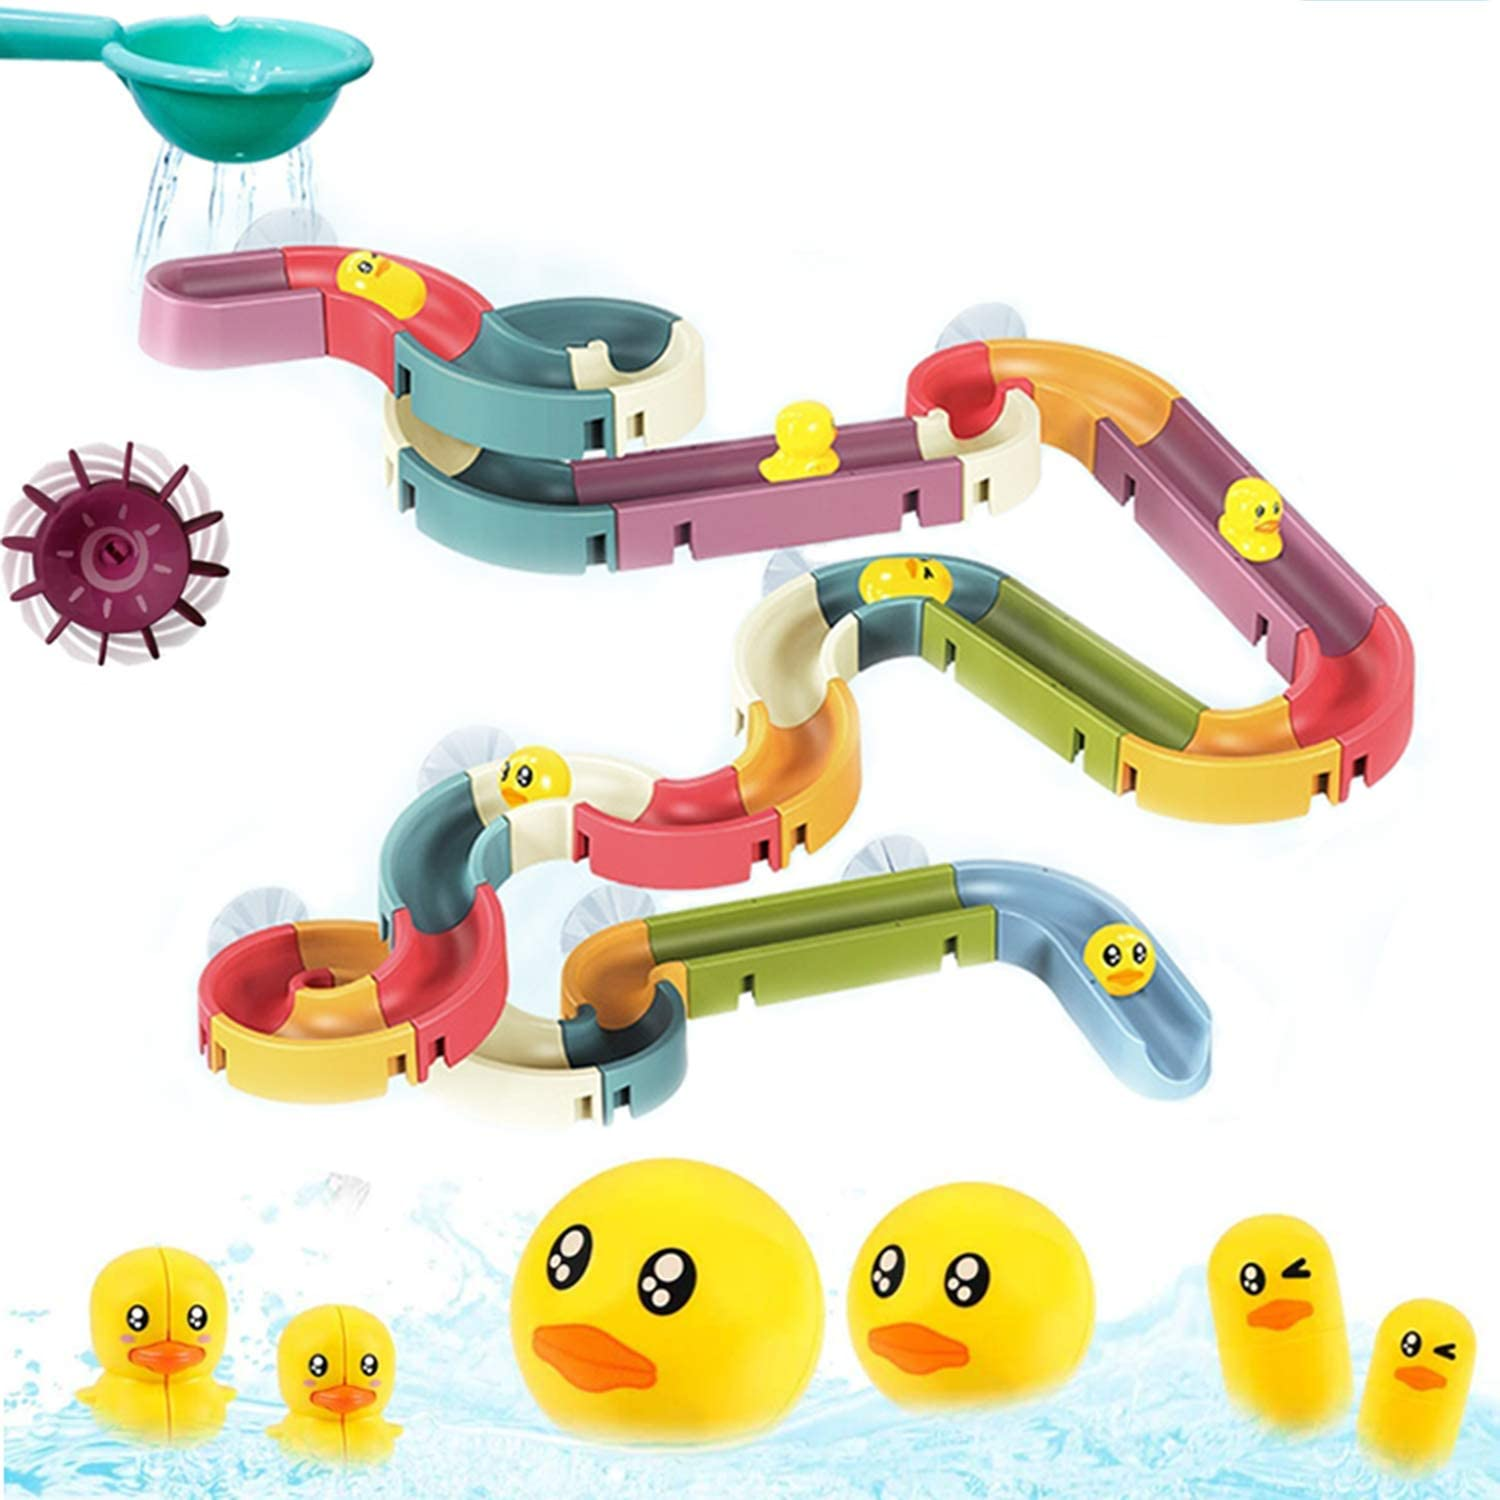 KELIWOW Kids Bath Toys Fun DIY Slide Indoor Waterfall Track Stick to Wall with Suction Cup and Wheels Water Ball Shower Floating Bathtub Toy Summer Children Favor Gift for Boys Girls